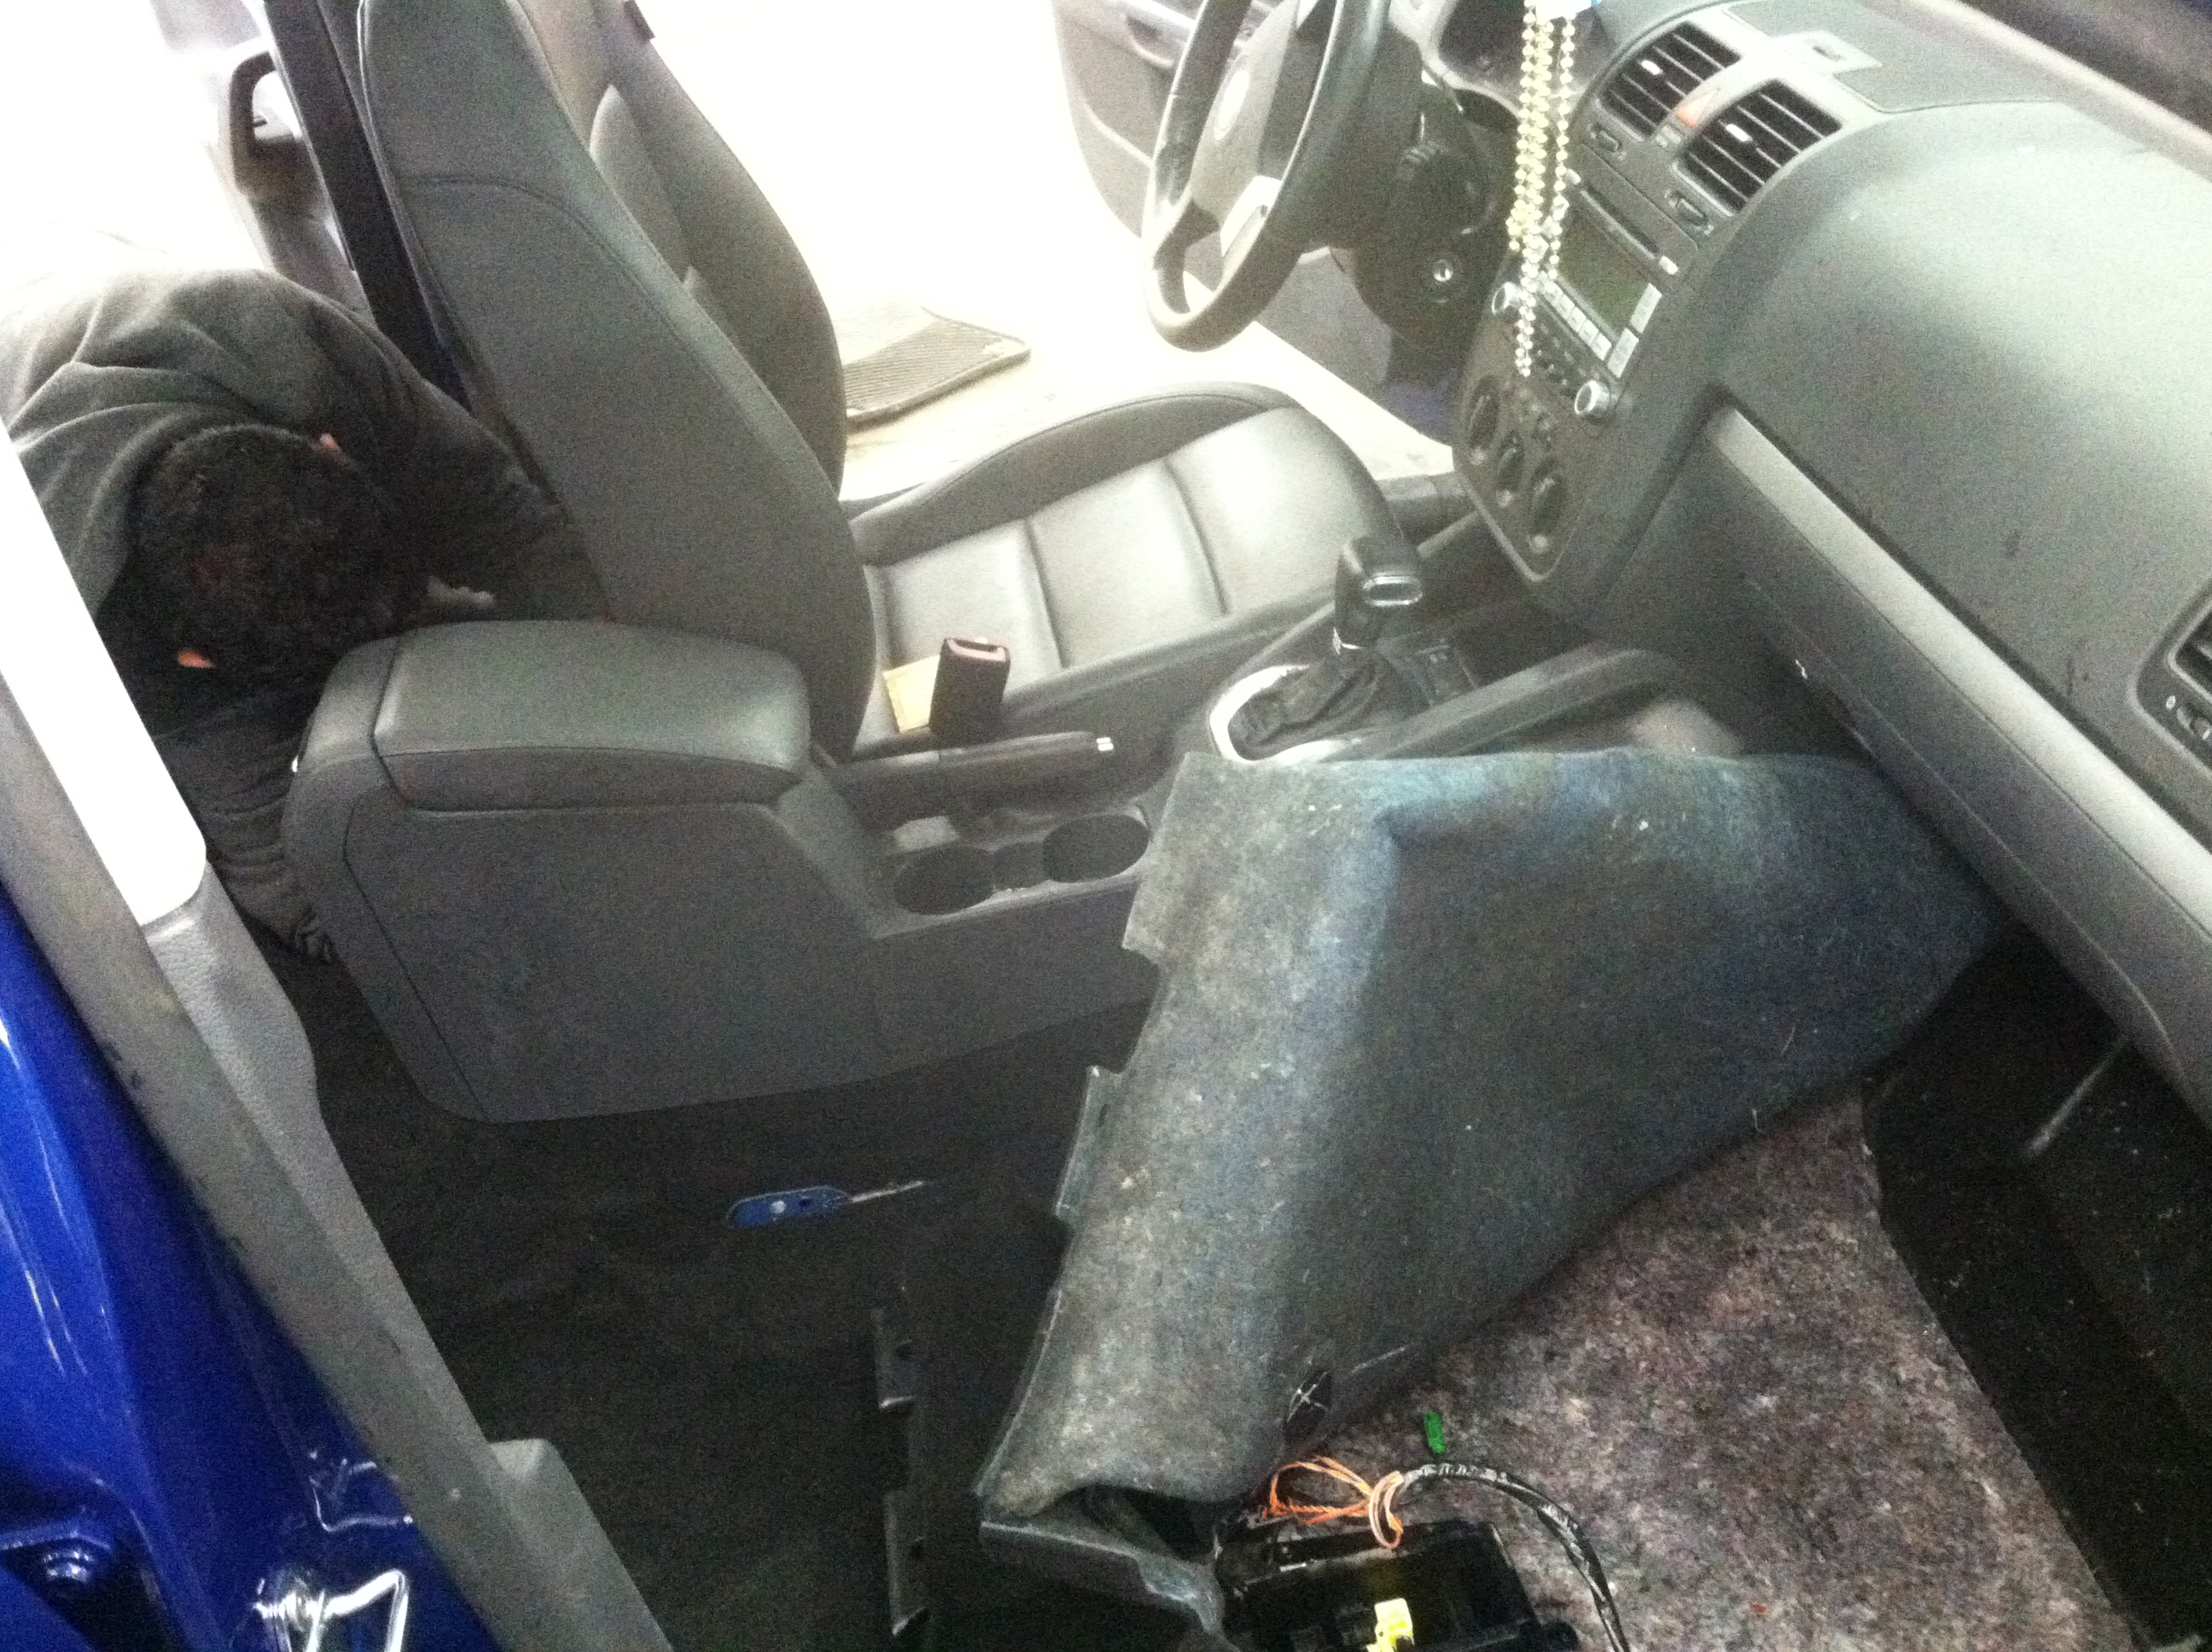 fabric maintenance car seats clean panels carpet leather large damage how water plastic interior to